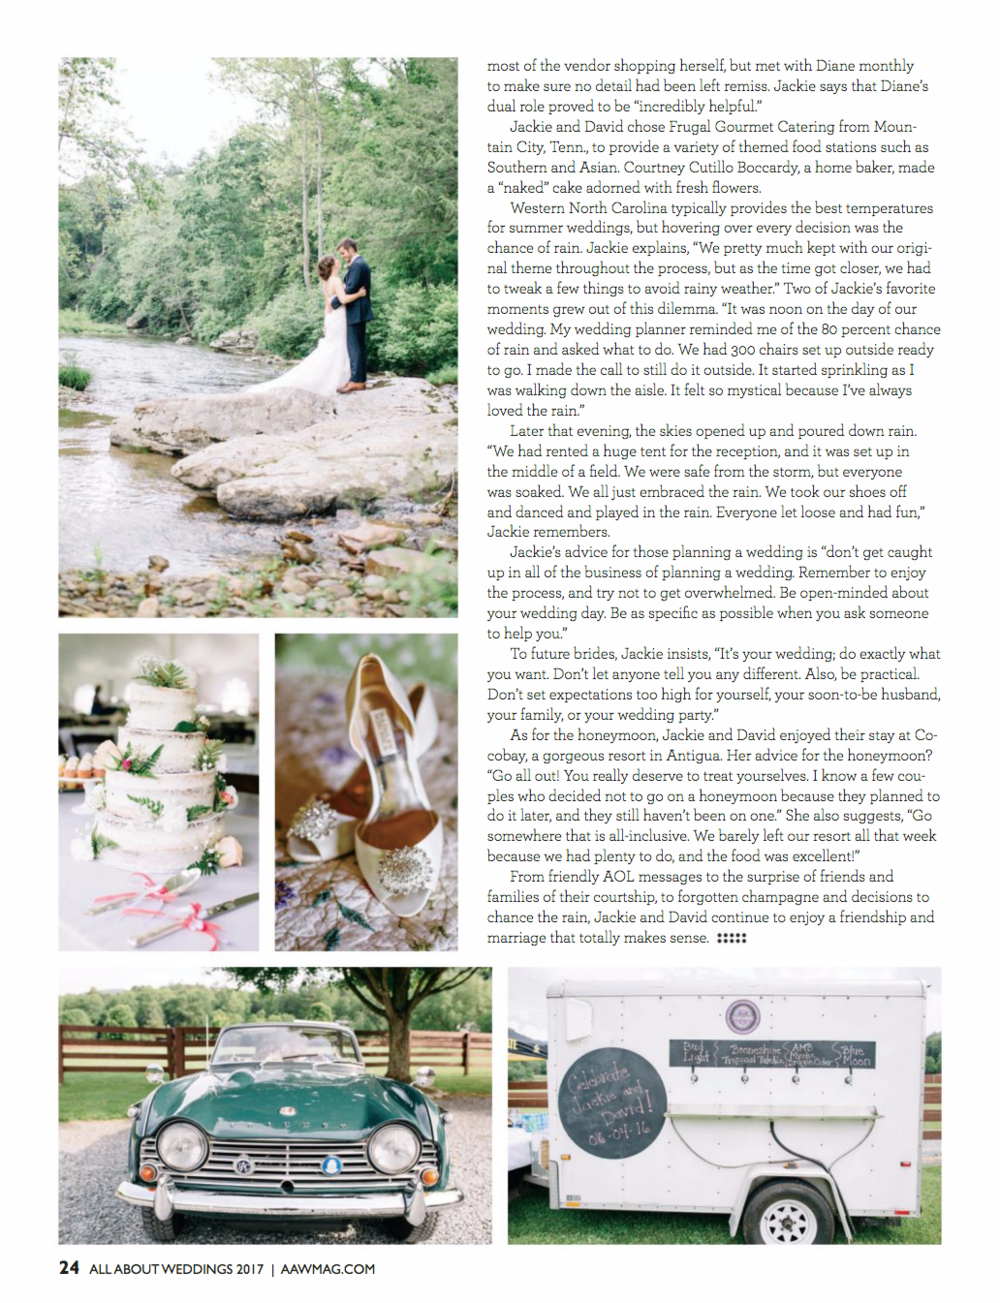 Jackie + David's Wedding was featured on the Cover of All About Weddings Magazine! Photography by Revival Photography www.revivalphotography.com